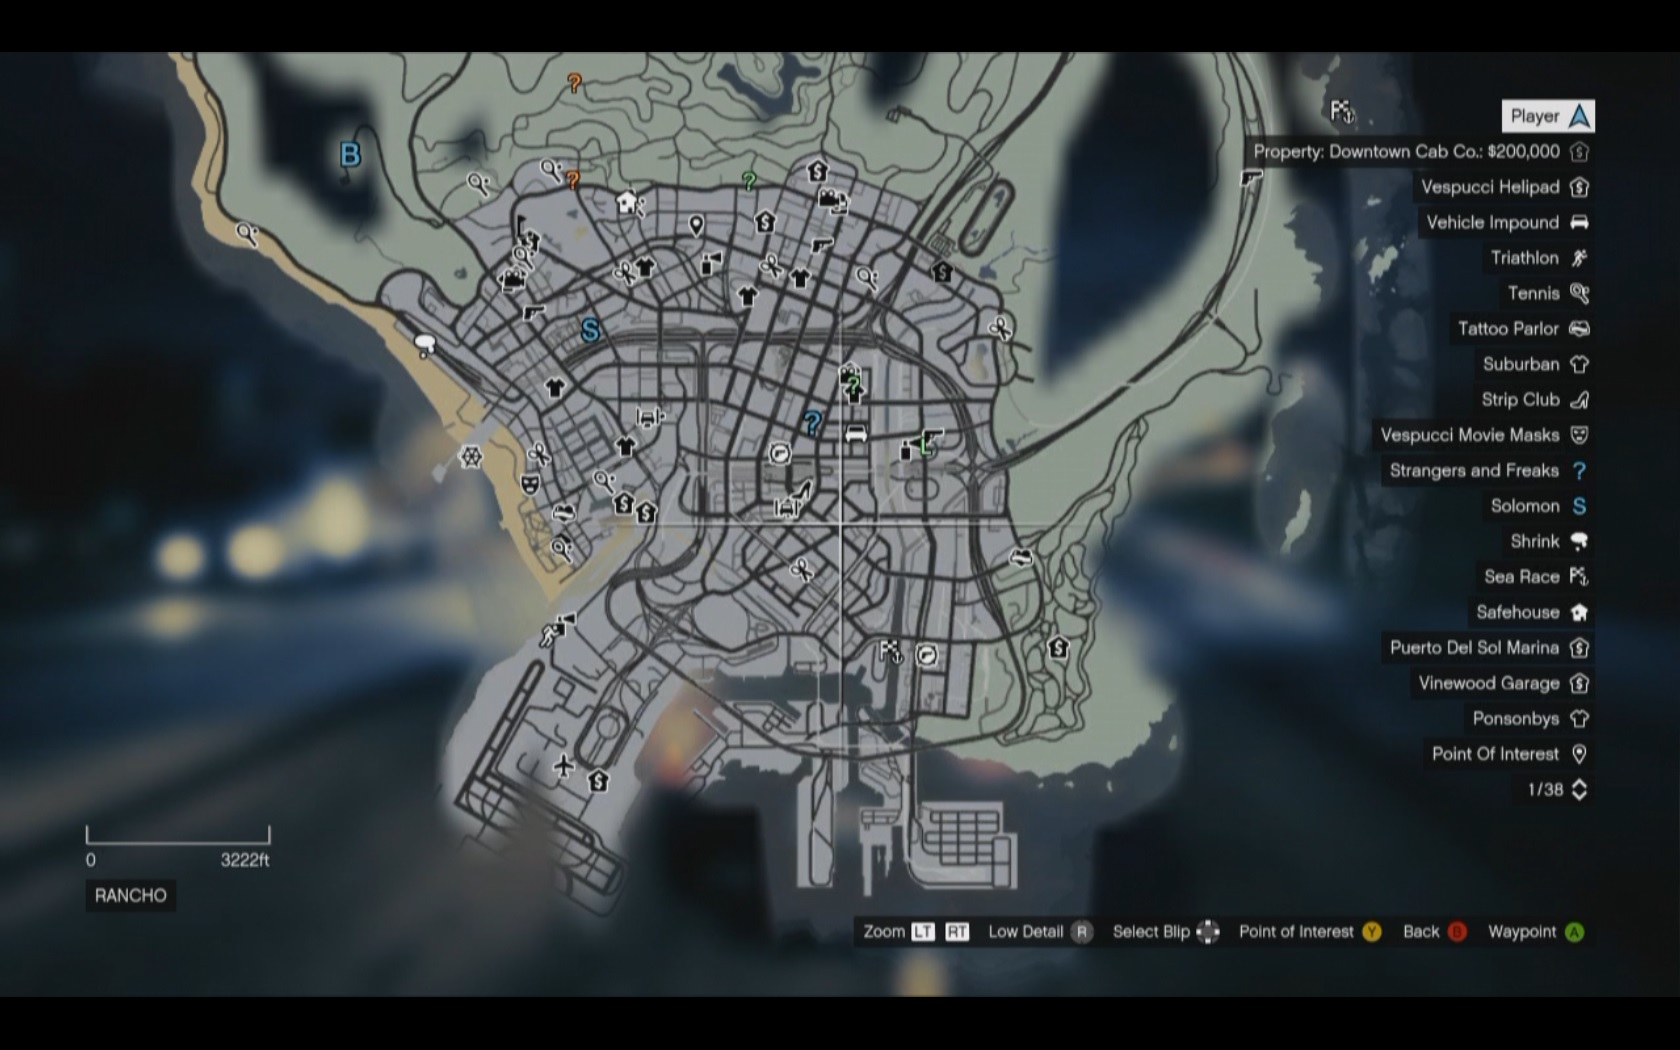 the refined geek 187 grand theft auto v i�m getting too old